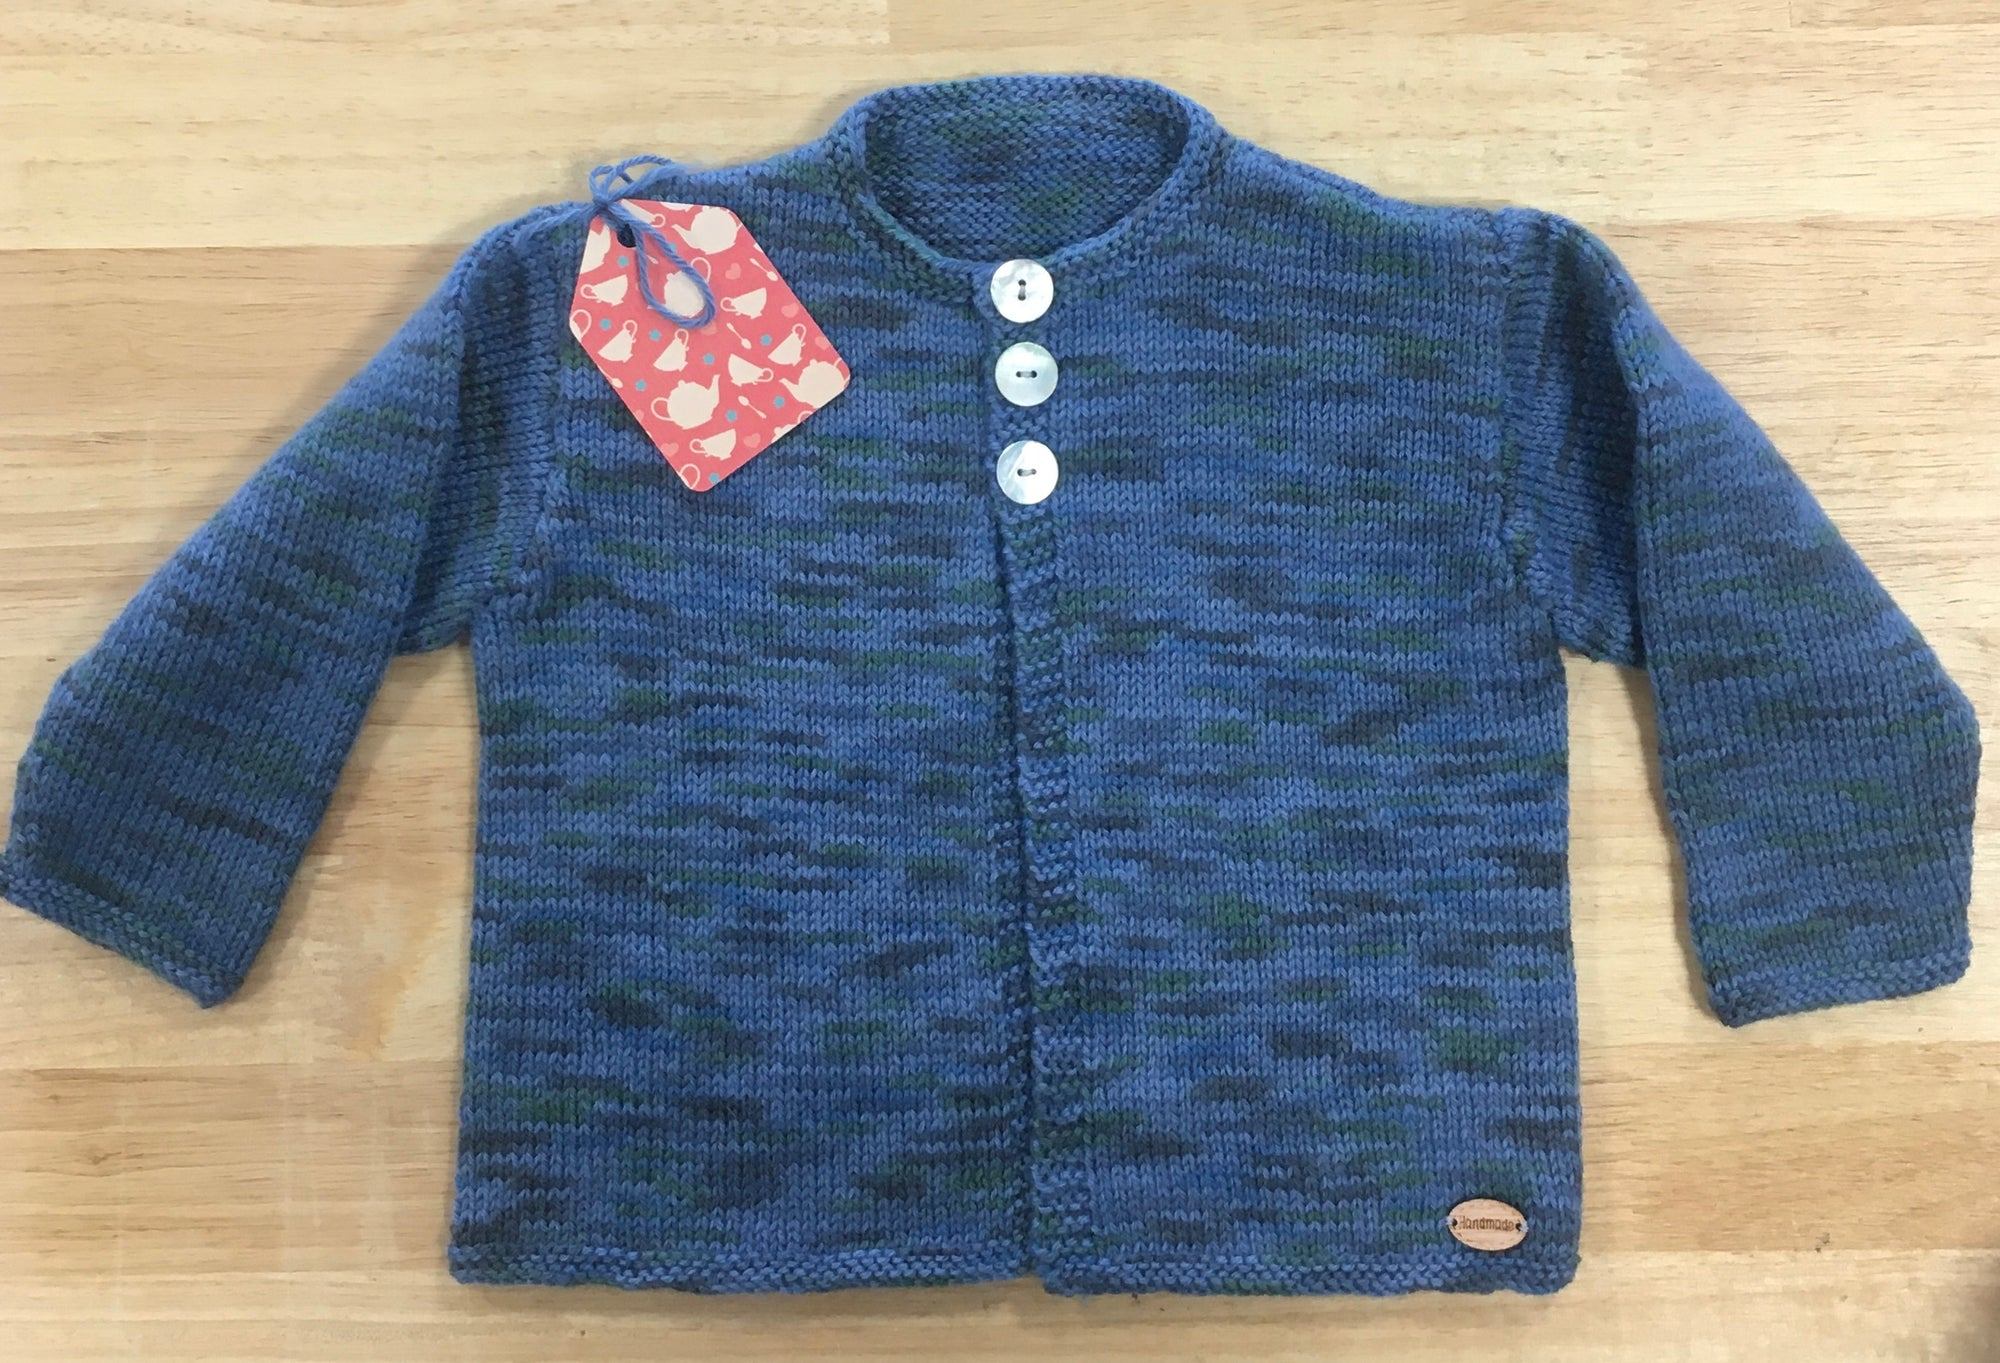 Long Sleeved Cardigan (Blue with shades of grey & green) - 6 months